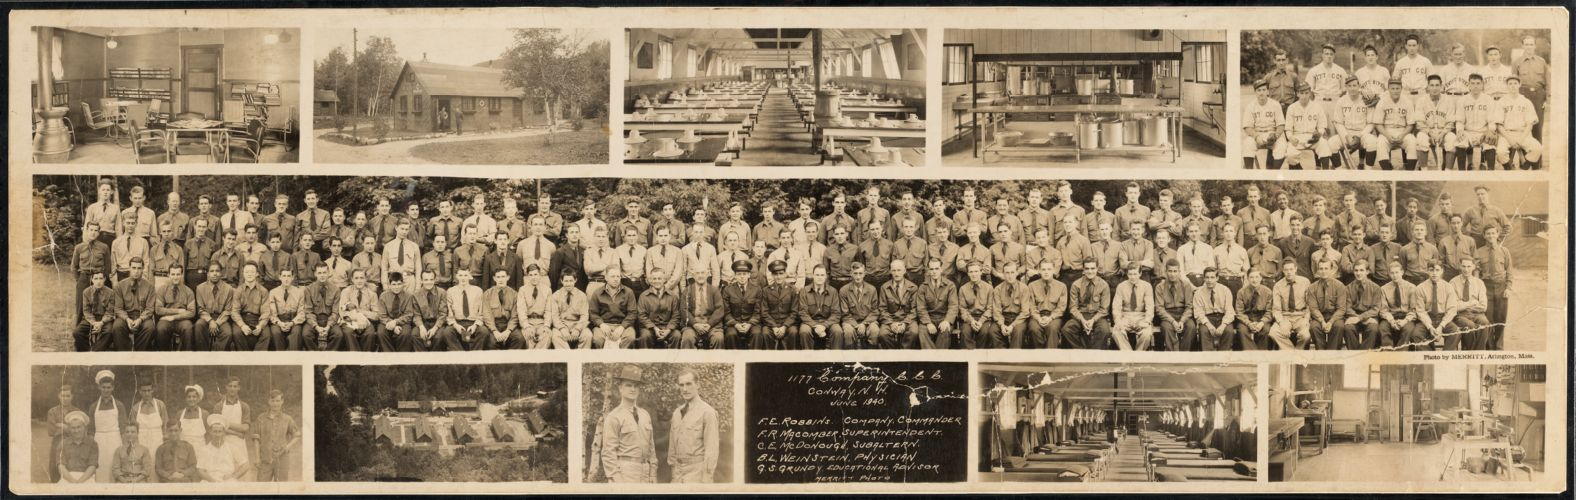 1177 Company C.C.C., Conway, N.H., June 1940